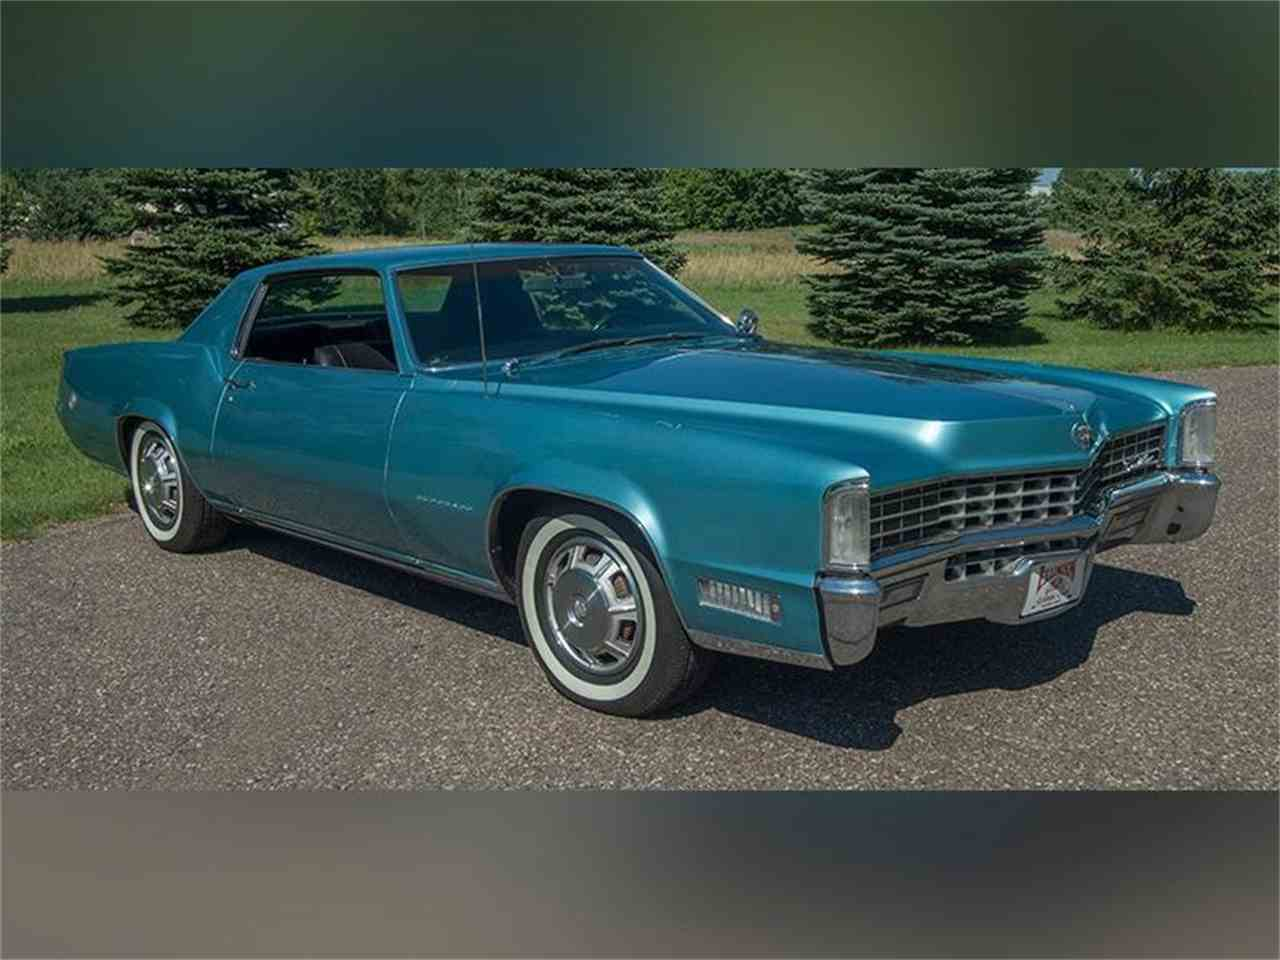 https://ccpublic.blob.core.windows.net/cc-temp/listing/94/604/5806904-1967-cadillac-eldorado-std-c.jpg